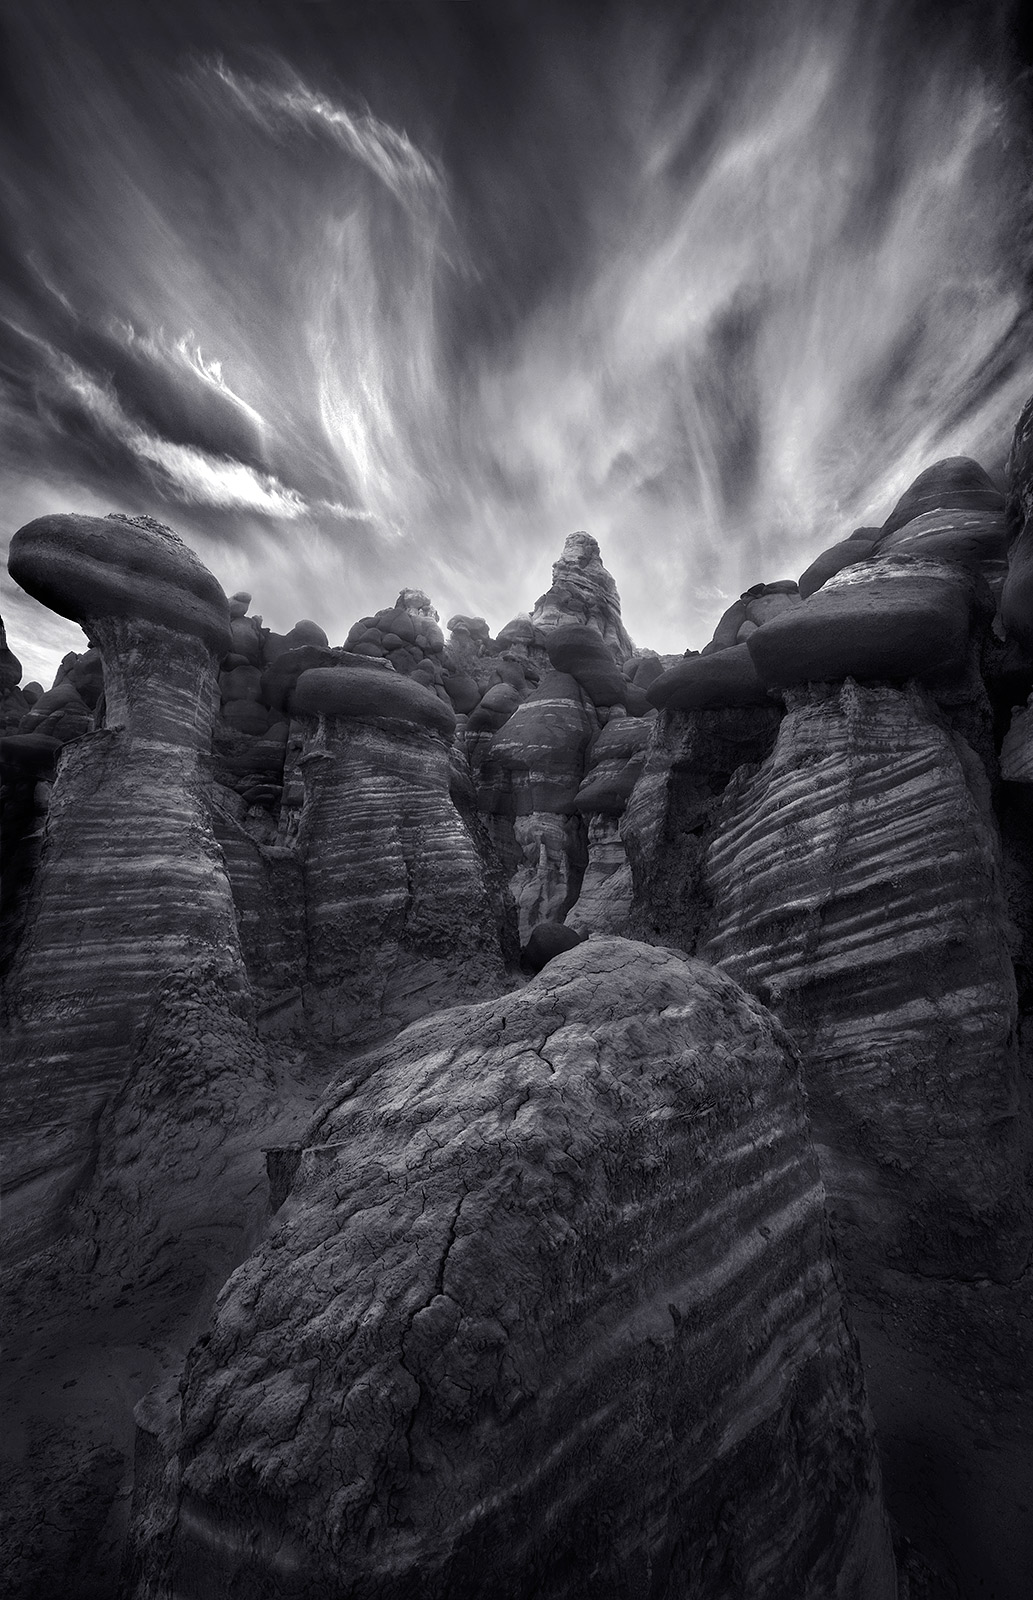 striped, rock formations, arizona, remote, sunset, black and white, dramatic, photo